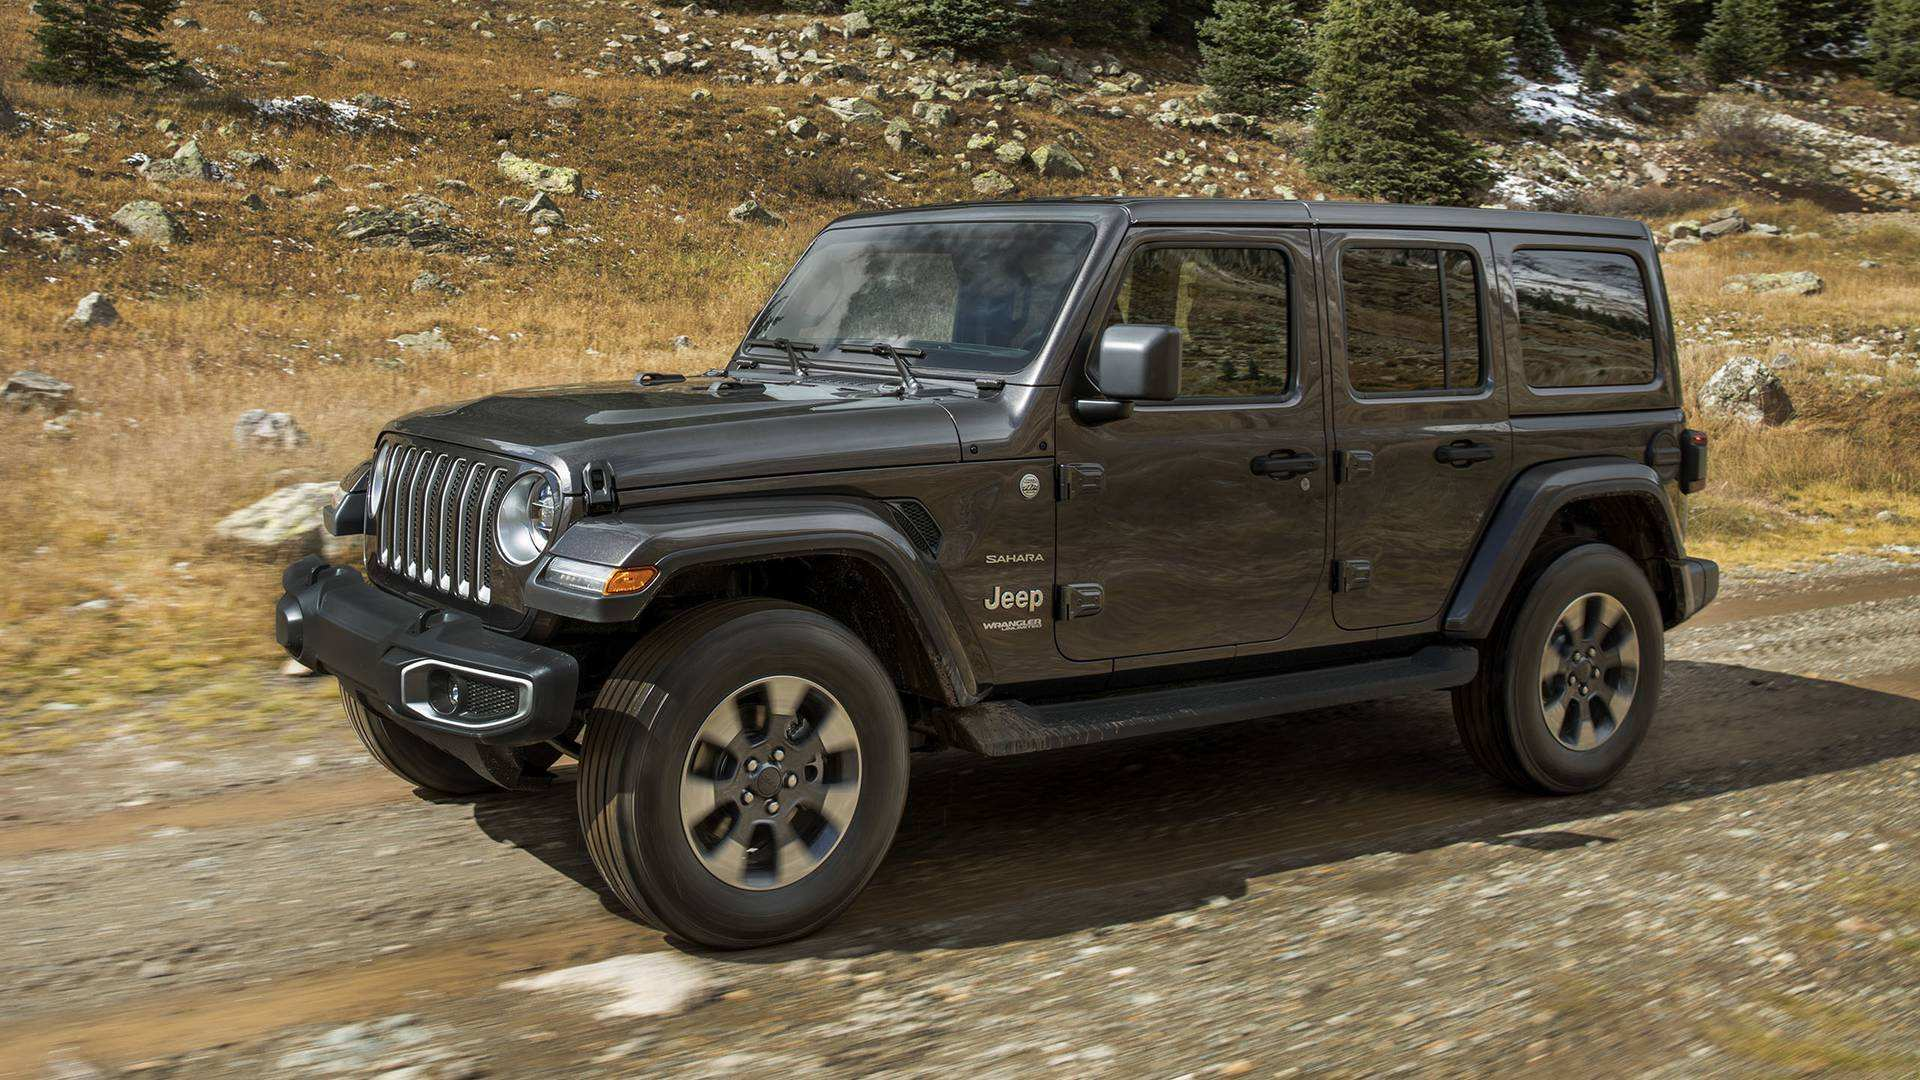 45 Best 2020 Jeep Wrangler Reviews